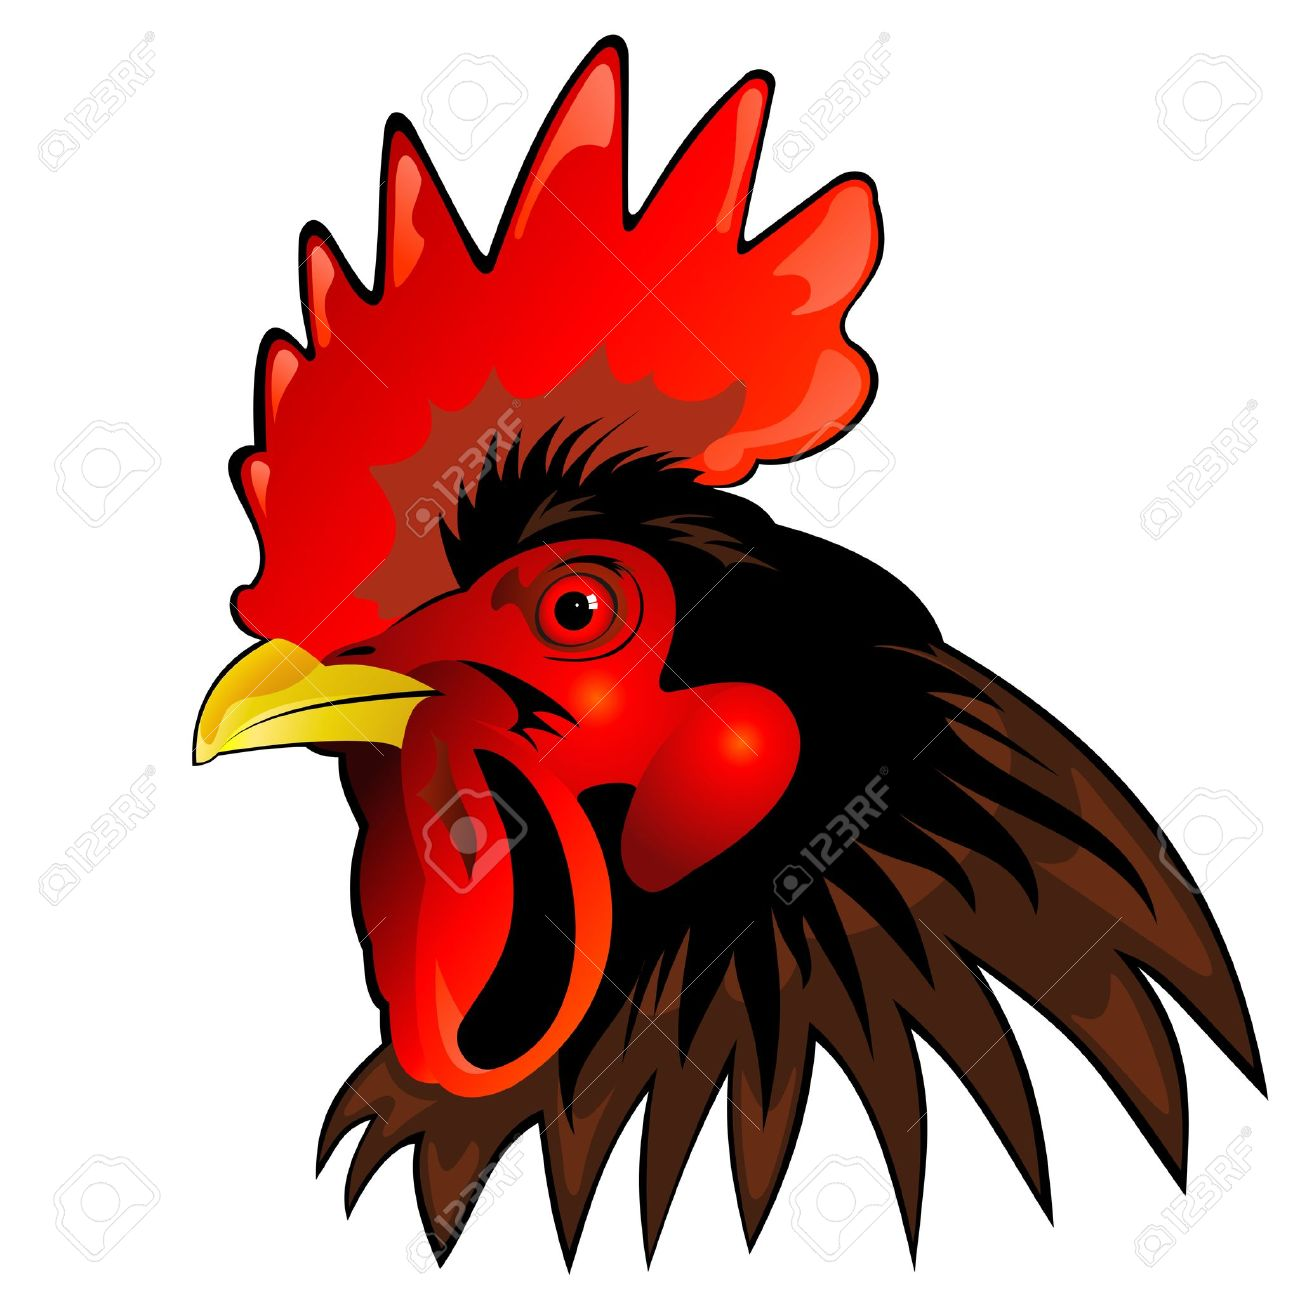 Rooster clipart rooster head #1